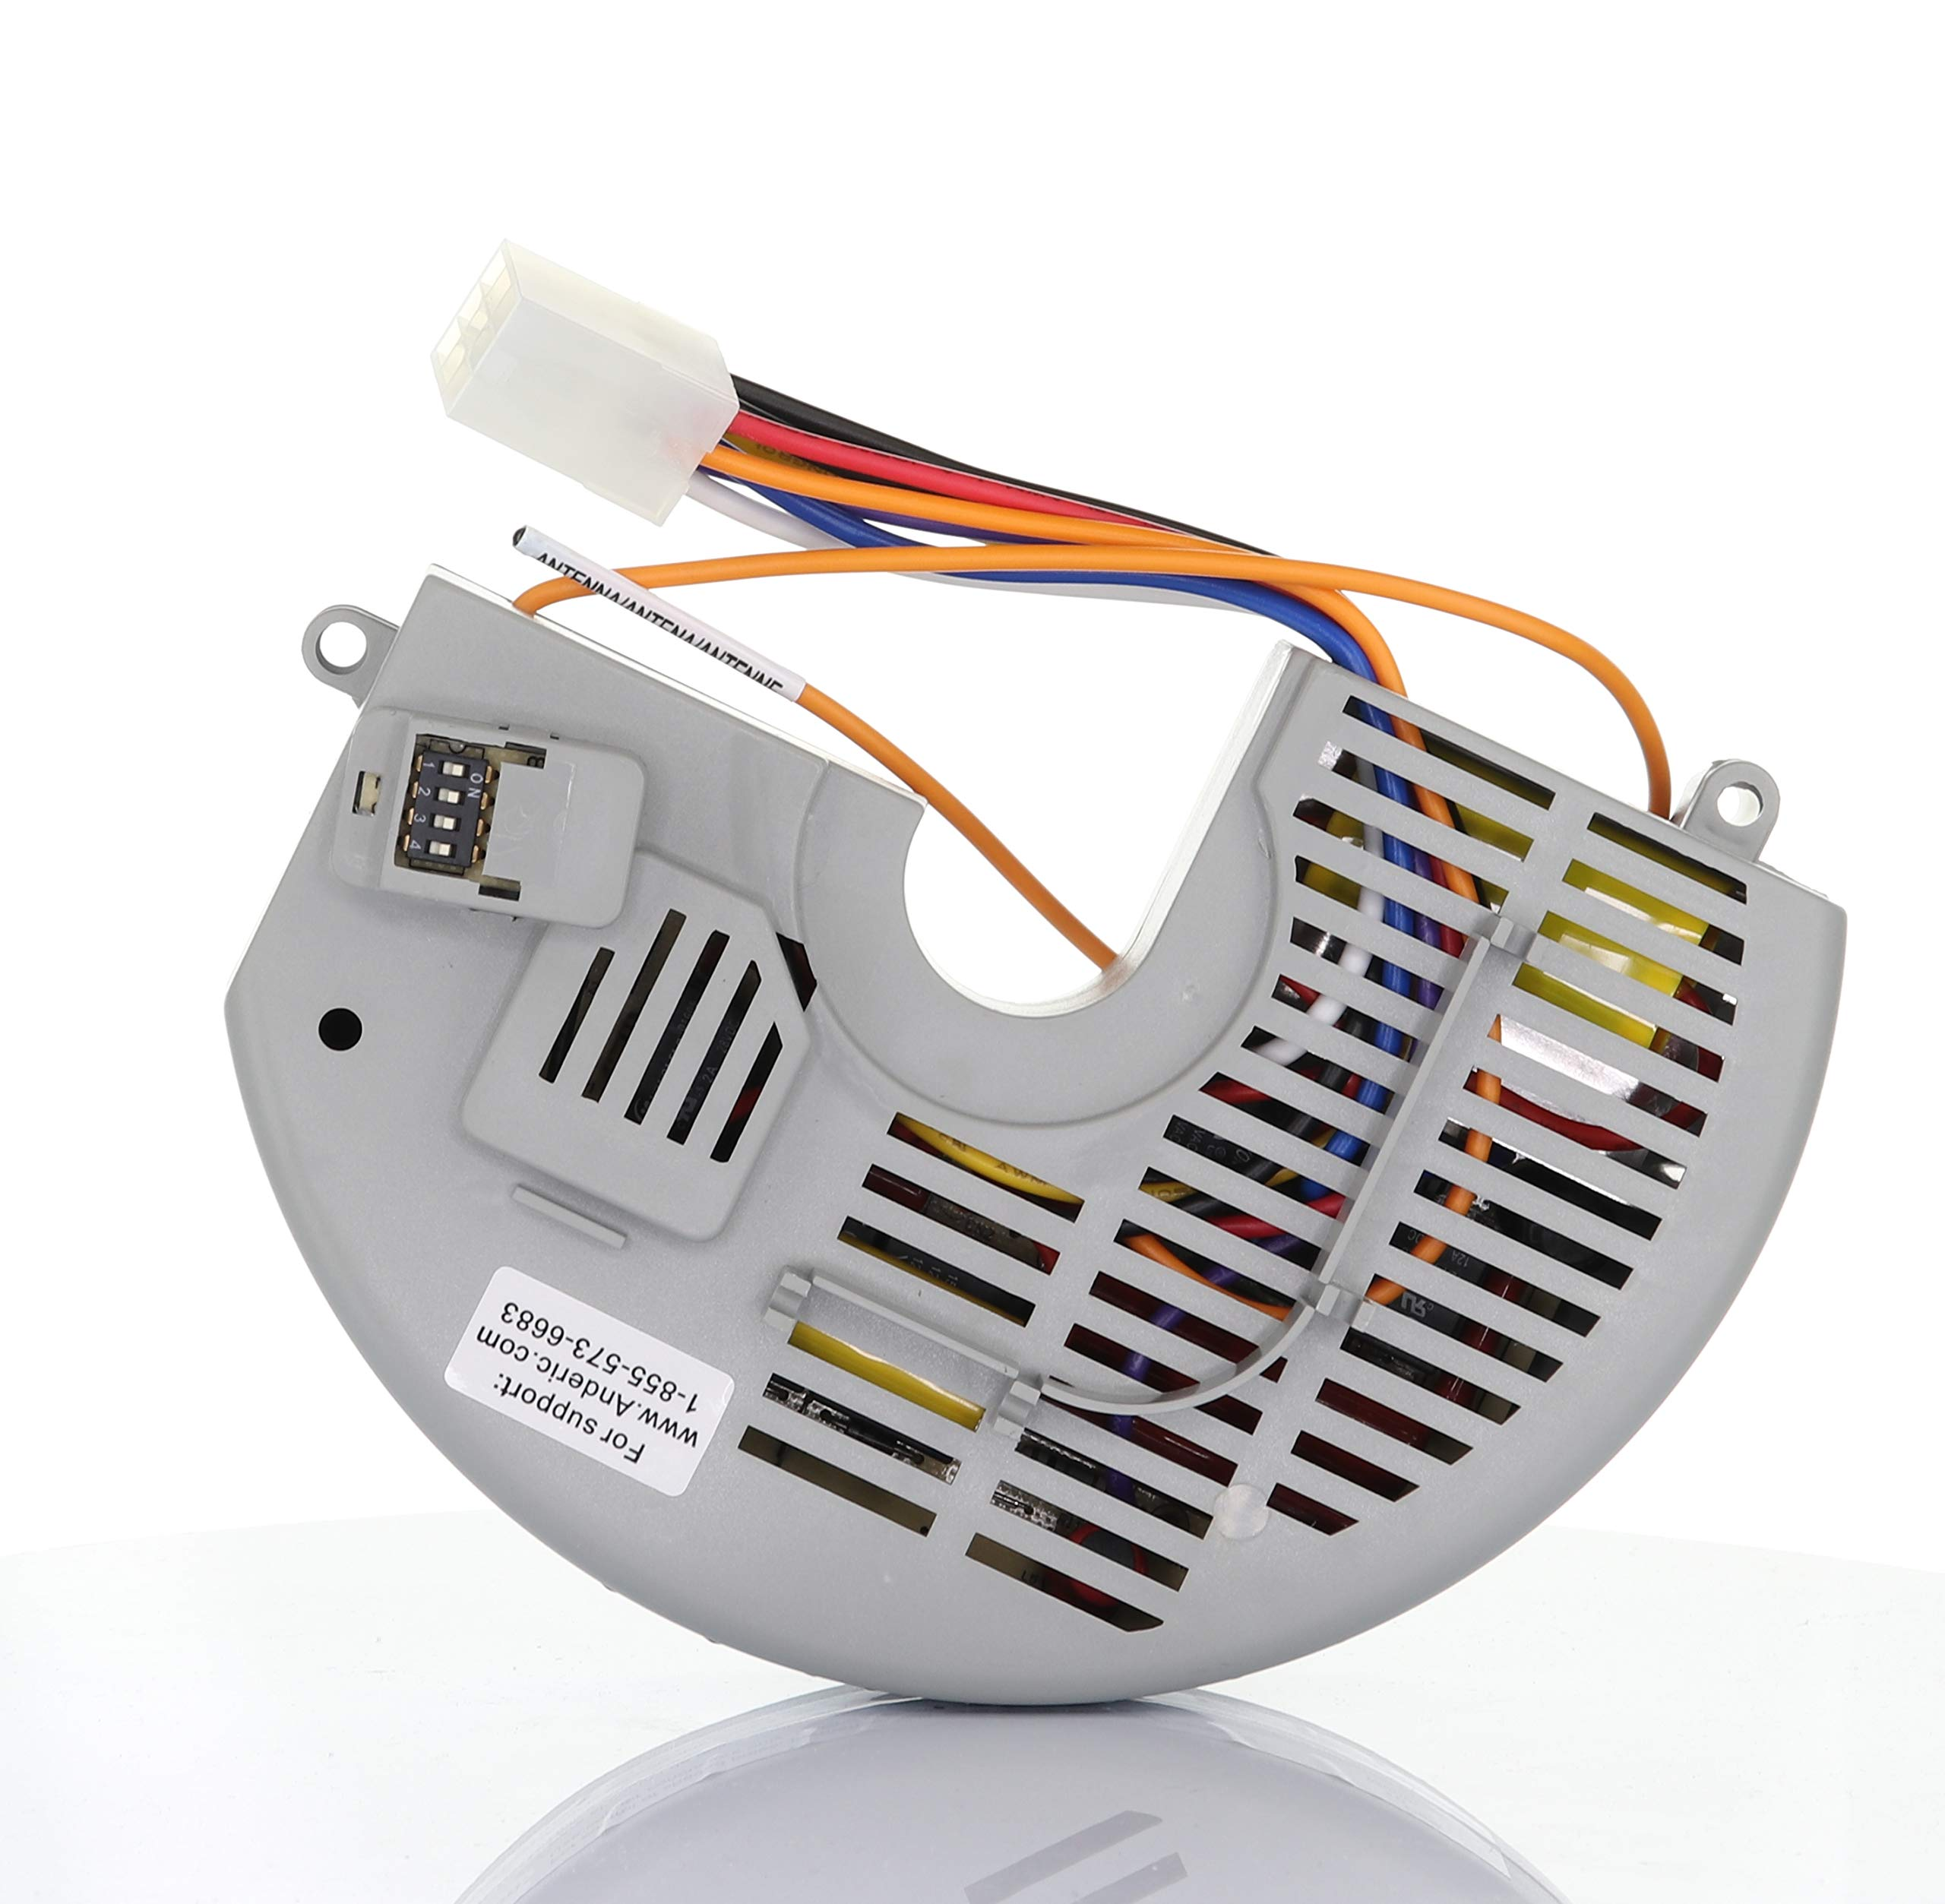 Anderic Replacement for Hampton Bay FAN10R Ceiling Fan Receiver (FAN-10R, Used with Hampton Bay FAN9T, FAN-9T Thermostatic Remote) - Controls Fan Reverse, High, Medium, Low, Off and Lights by Anderic